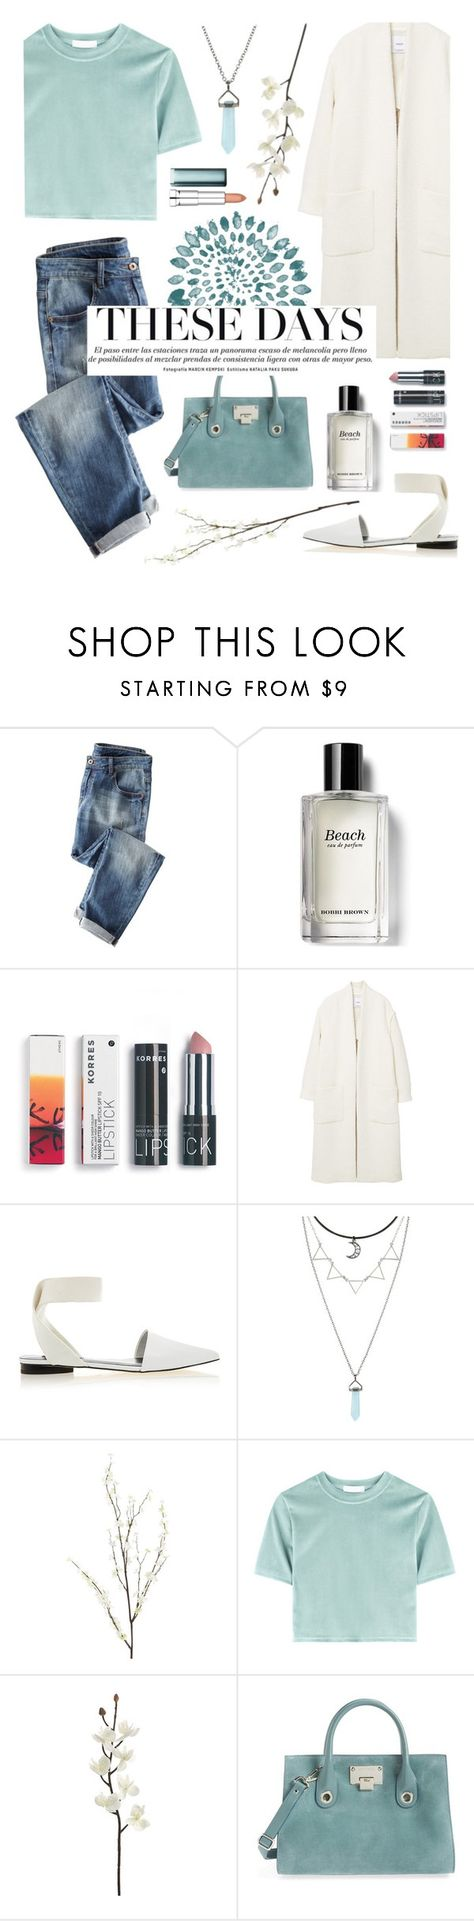 """""""aqua"""" by dffn-dn ❤ liked on Polyvore featuring Wrap, Bobbi Brown Cosmetics, Korres, MANGO, Senso, Pier 1 Imports, Jimmy Choo and Maybelline"""